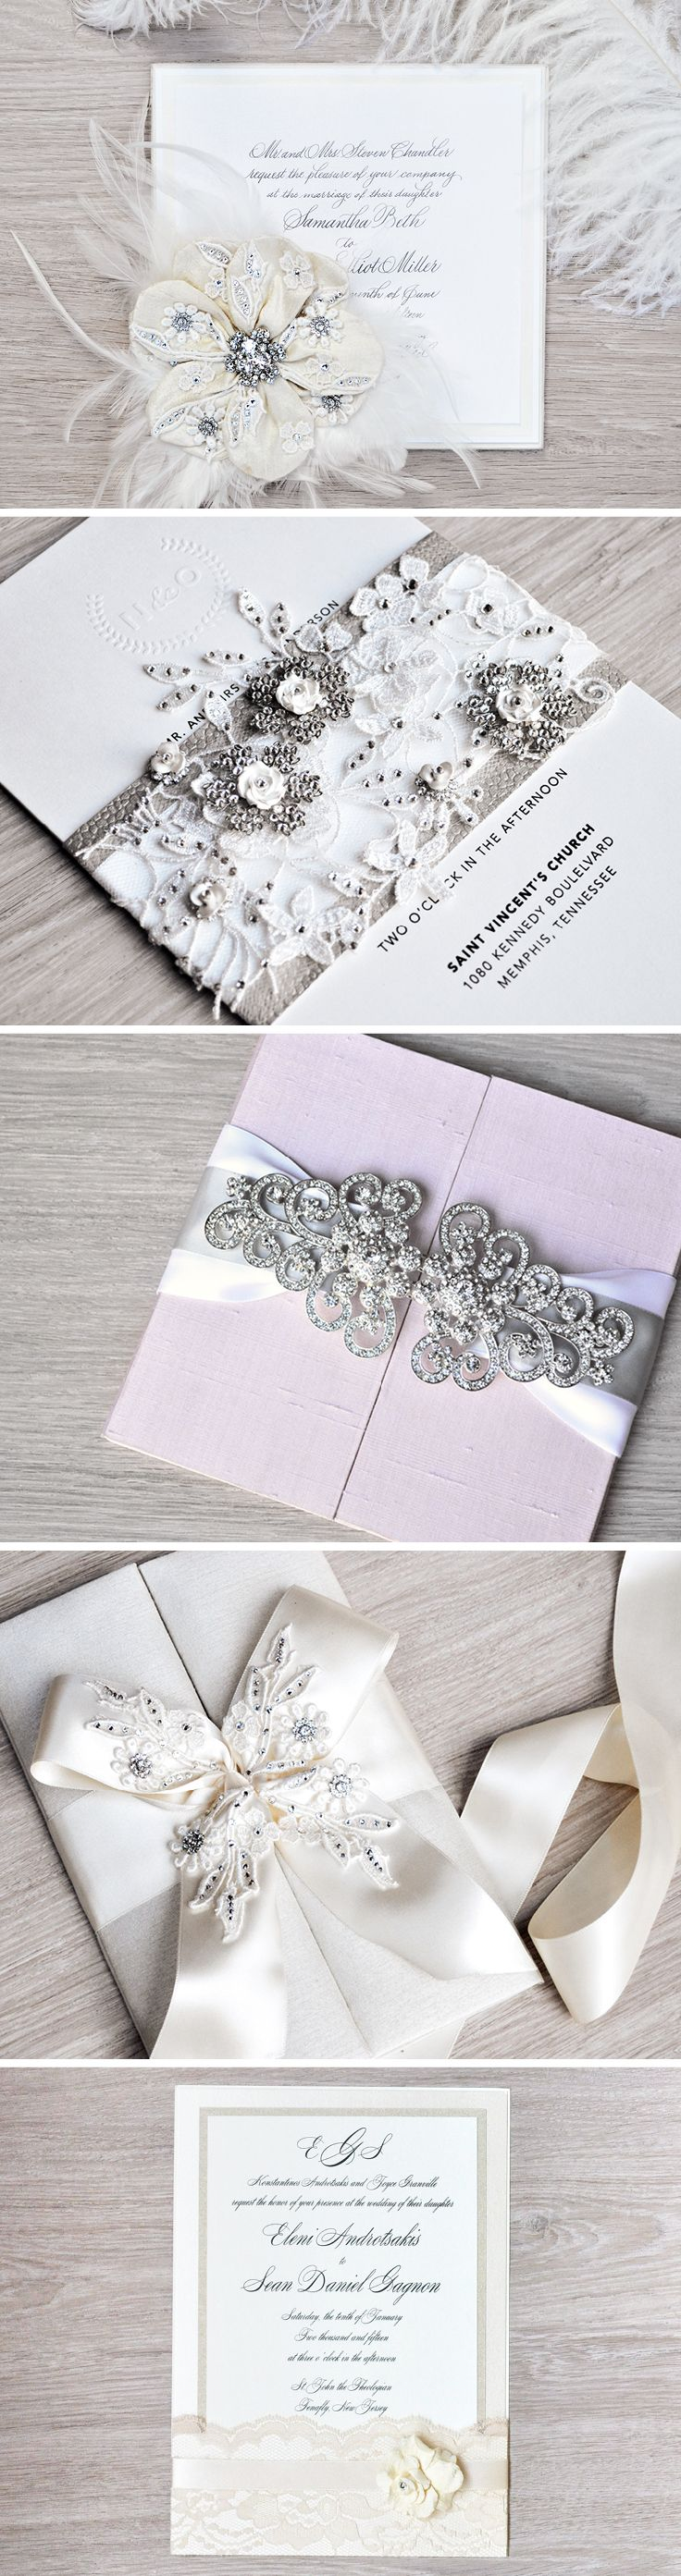 No two brides are alike...so why should your invitations be? Let the expert designers at Engaging Papers create a completely custom invitation suite for your big day, featuring luxury materials like silk, crystals, tulle, rhinestones and lace. #Couture #Wedding #EngagingPapers